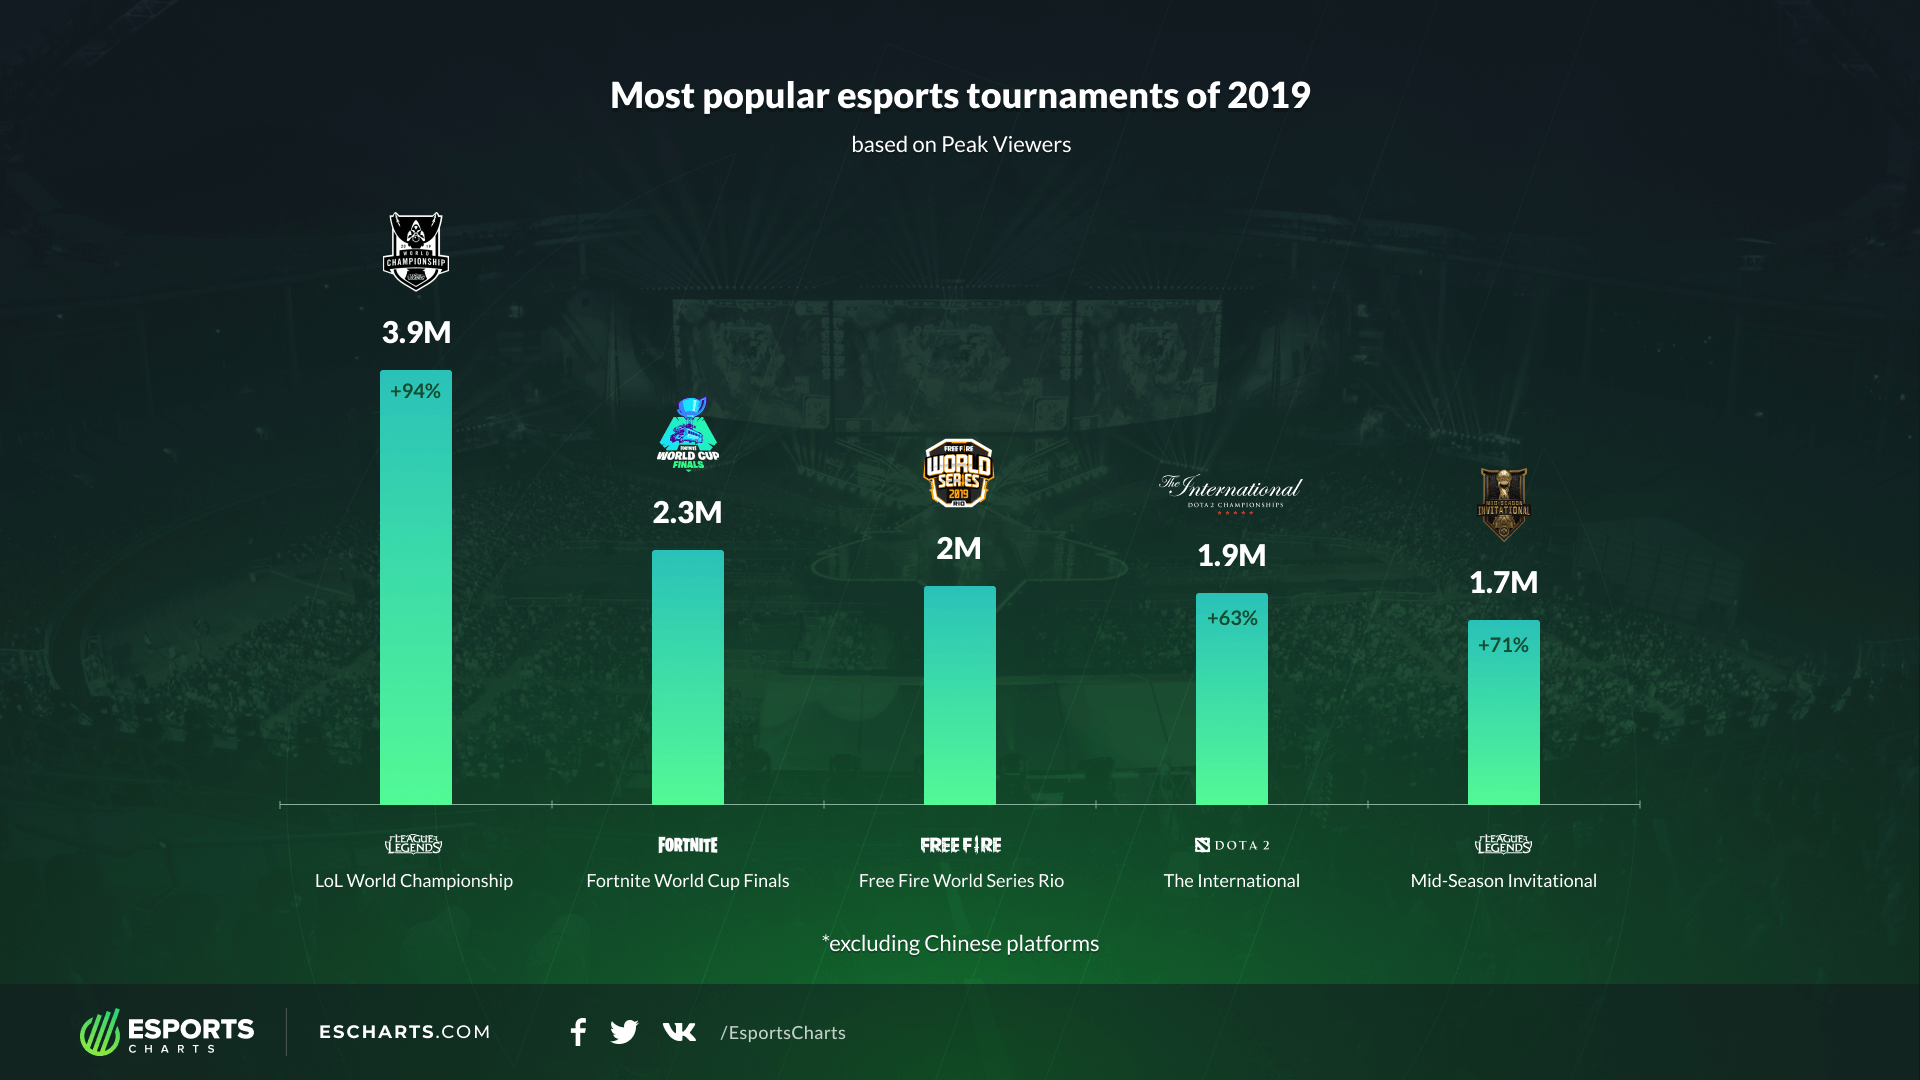 2019 Events by Peak Viewership